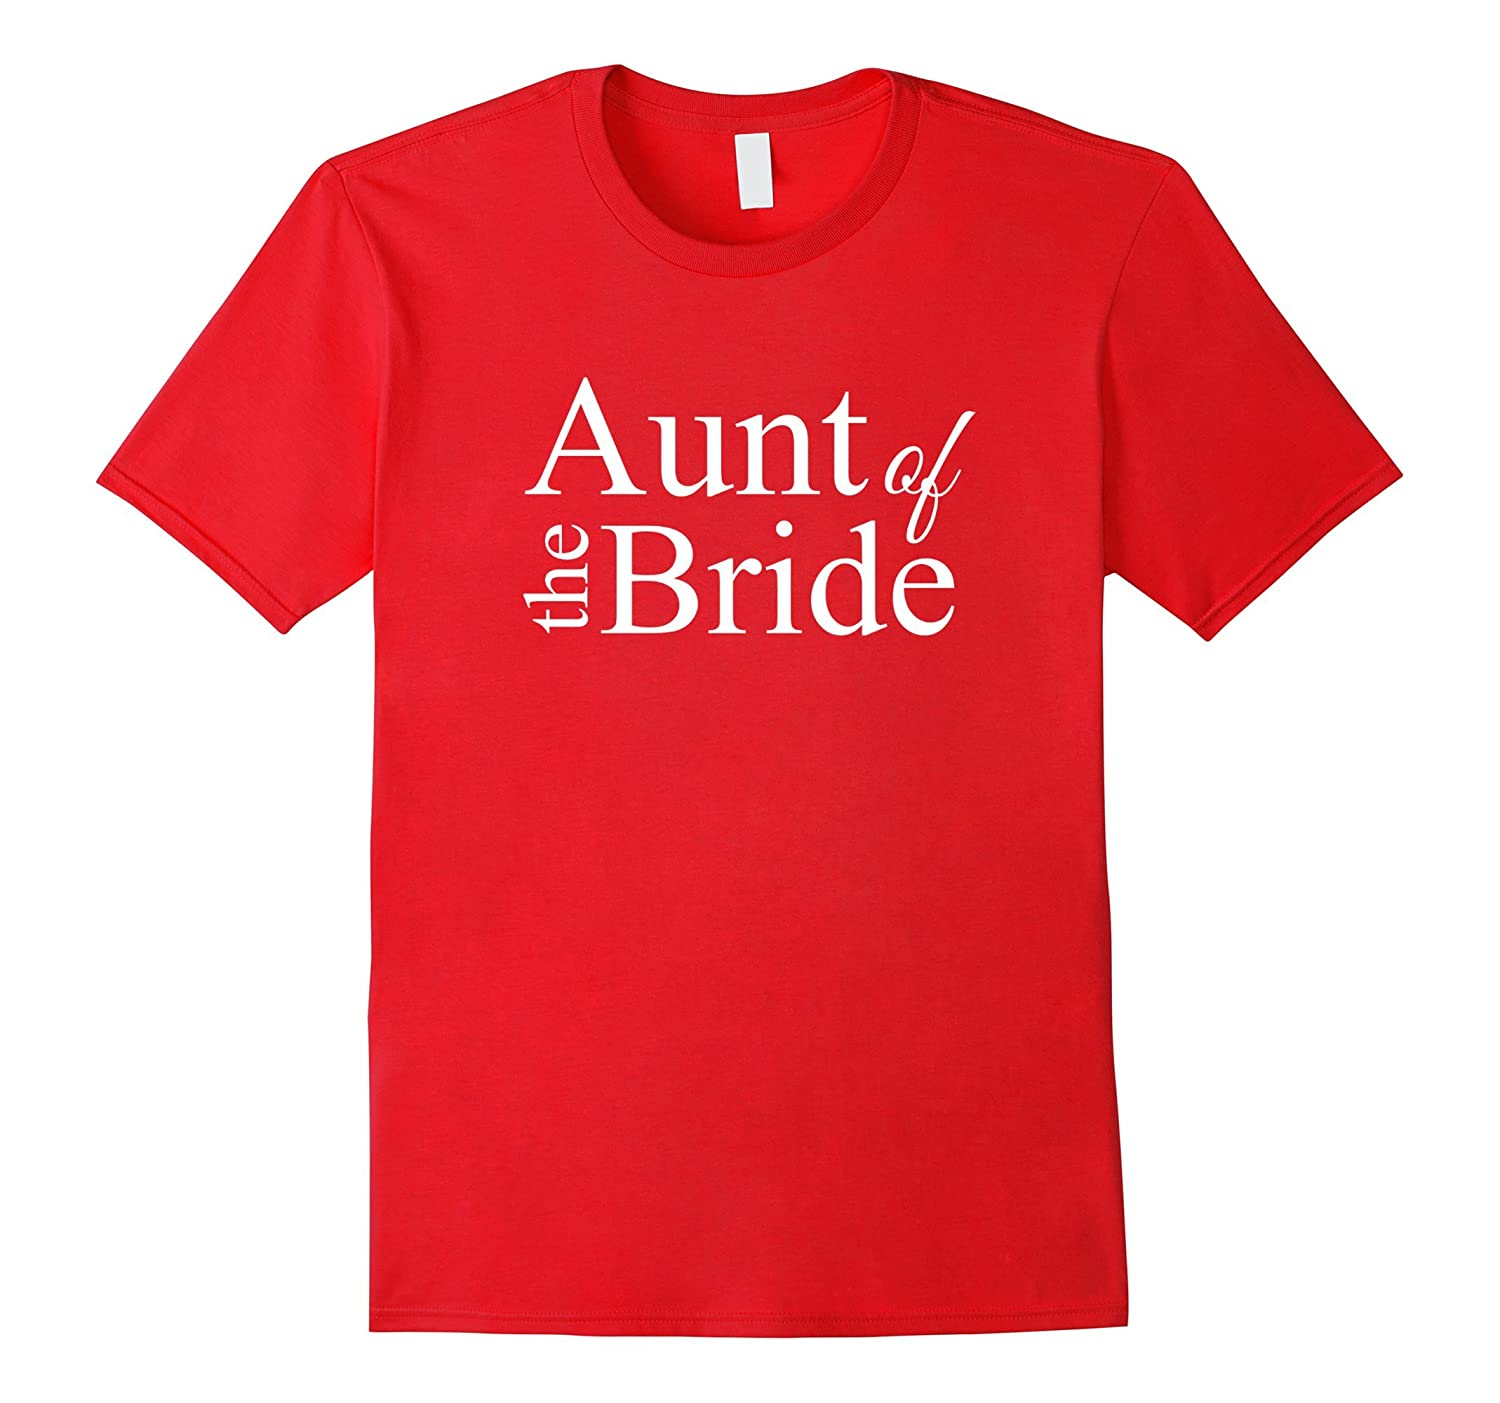 Aunt of the Bride Engagement Wedding Party t shirt for Aunty-TH